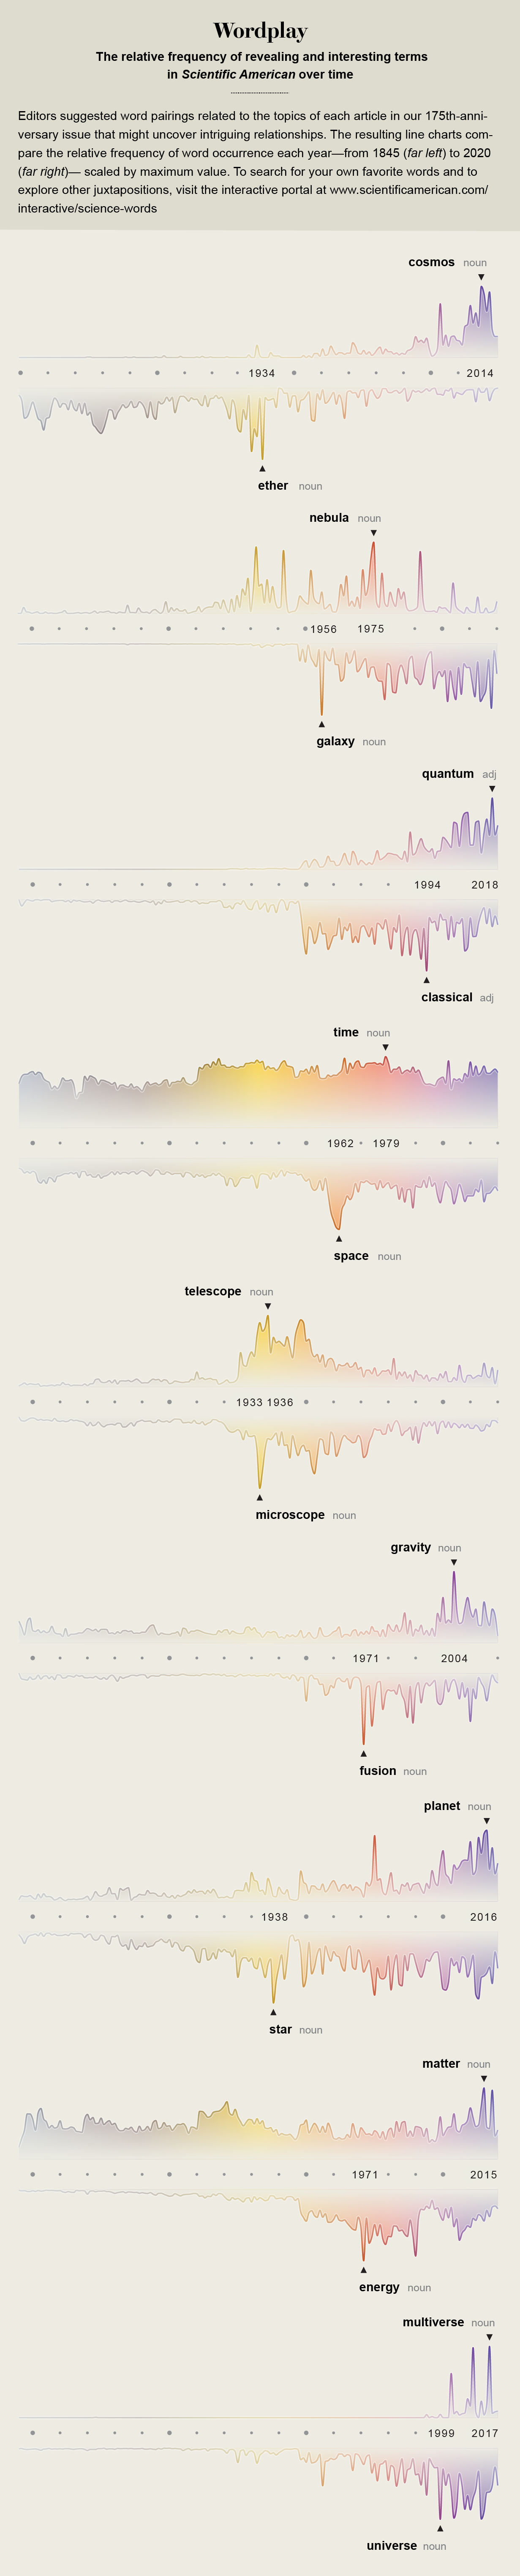 In honor of Scientific American's 175th anniversary: Relative frequency of terms in the magazine, from 1845 to the present.